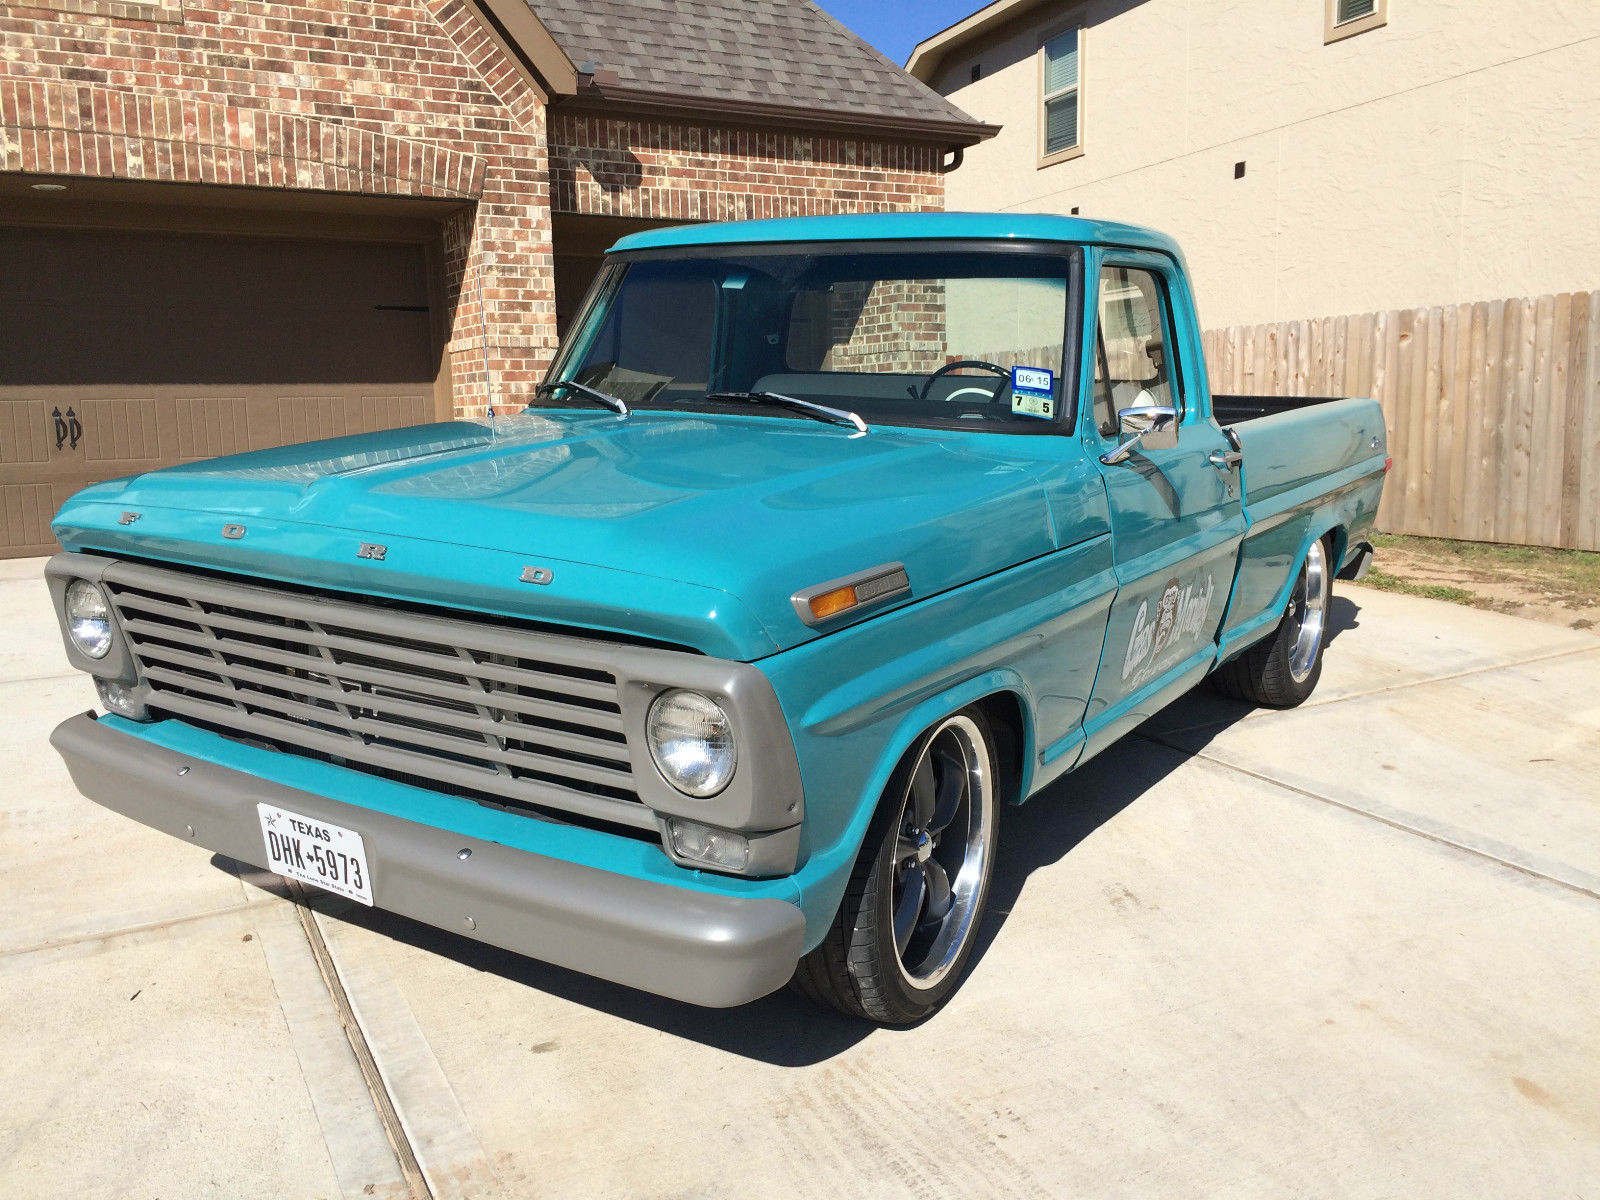 Gas monkey garage built ford f100 short bed truck for Garage ford savoie